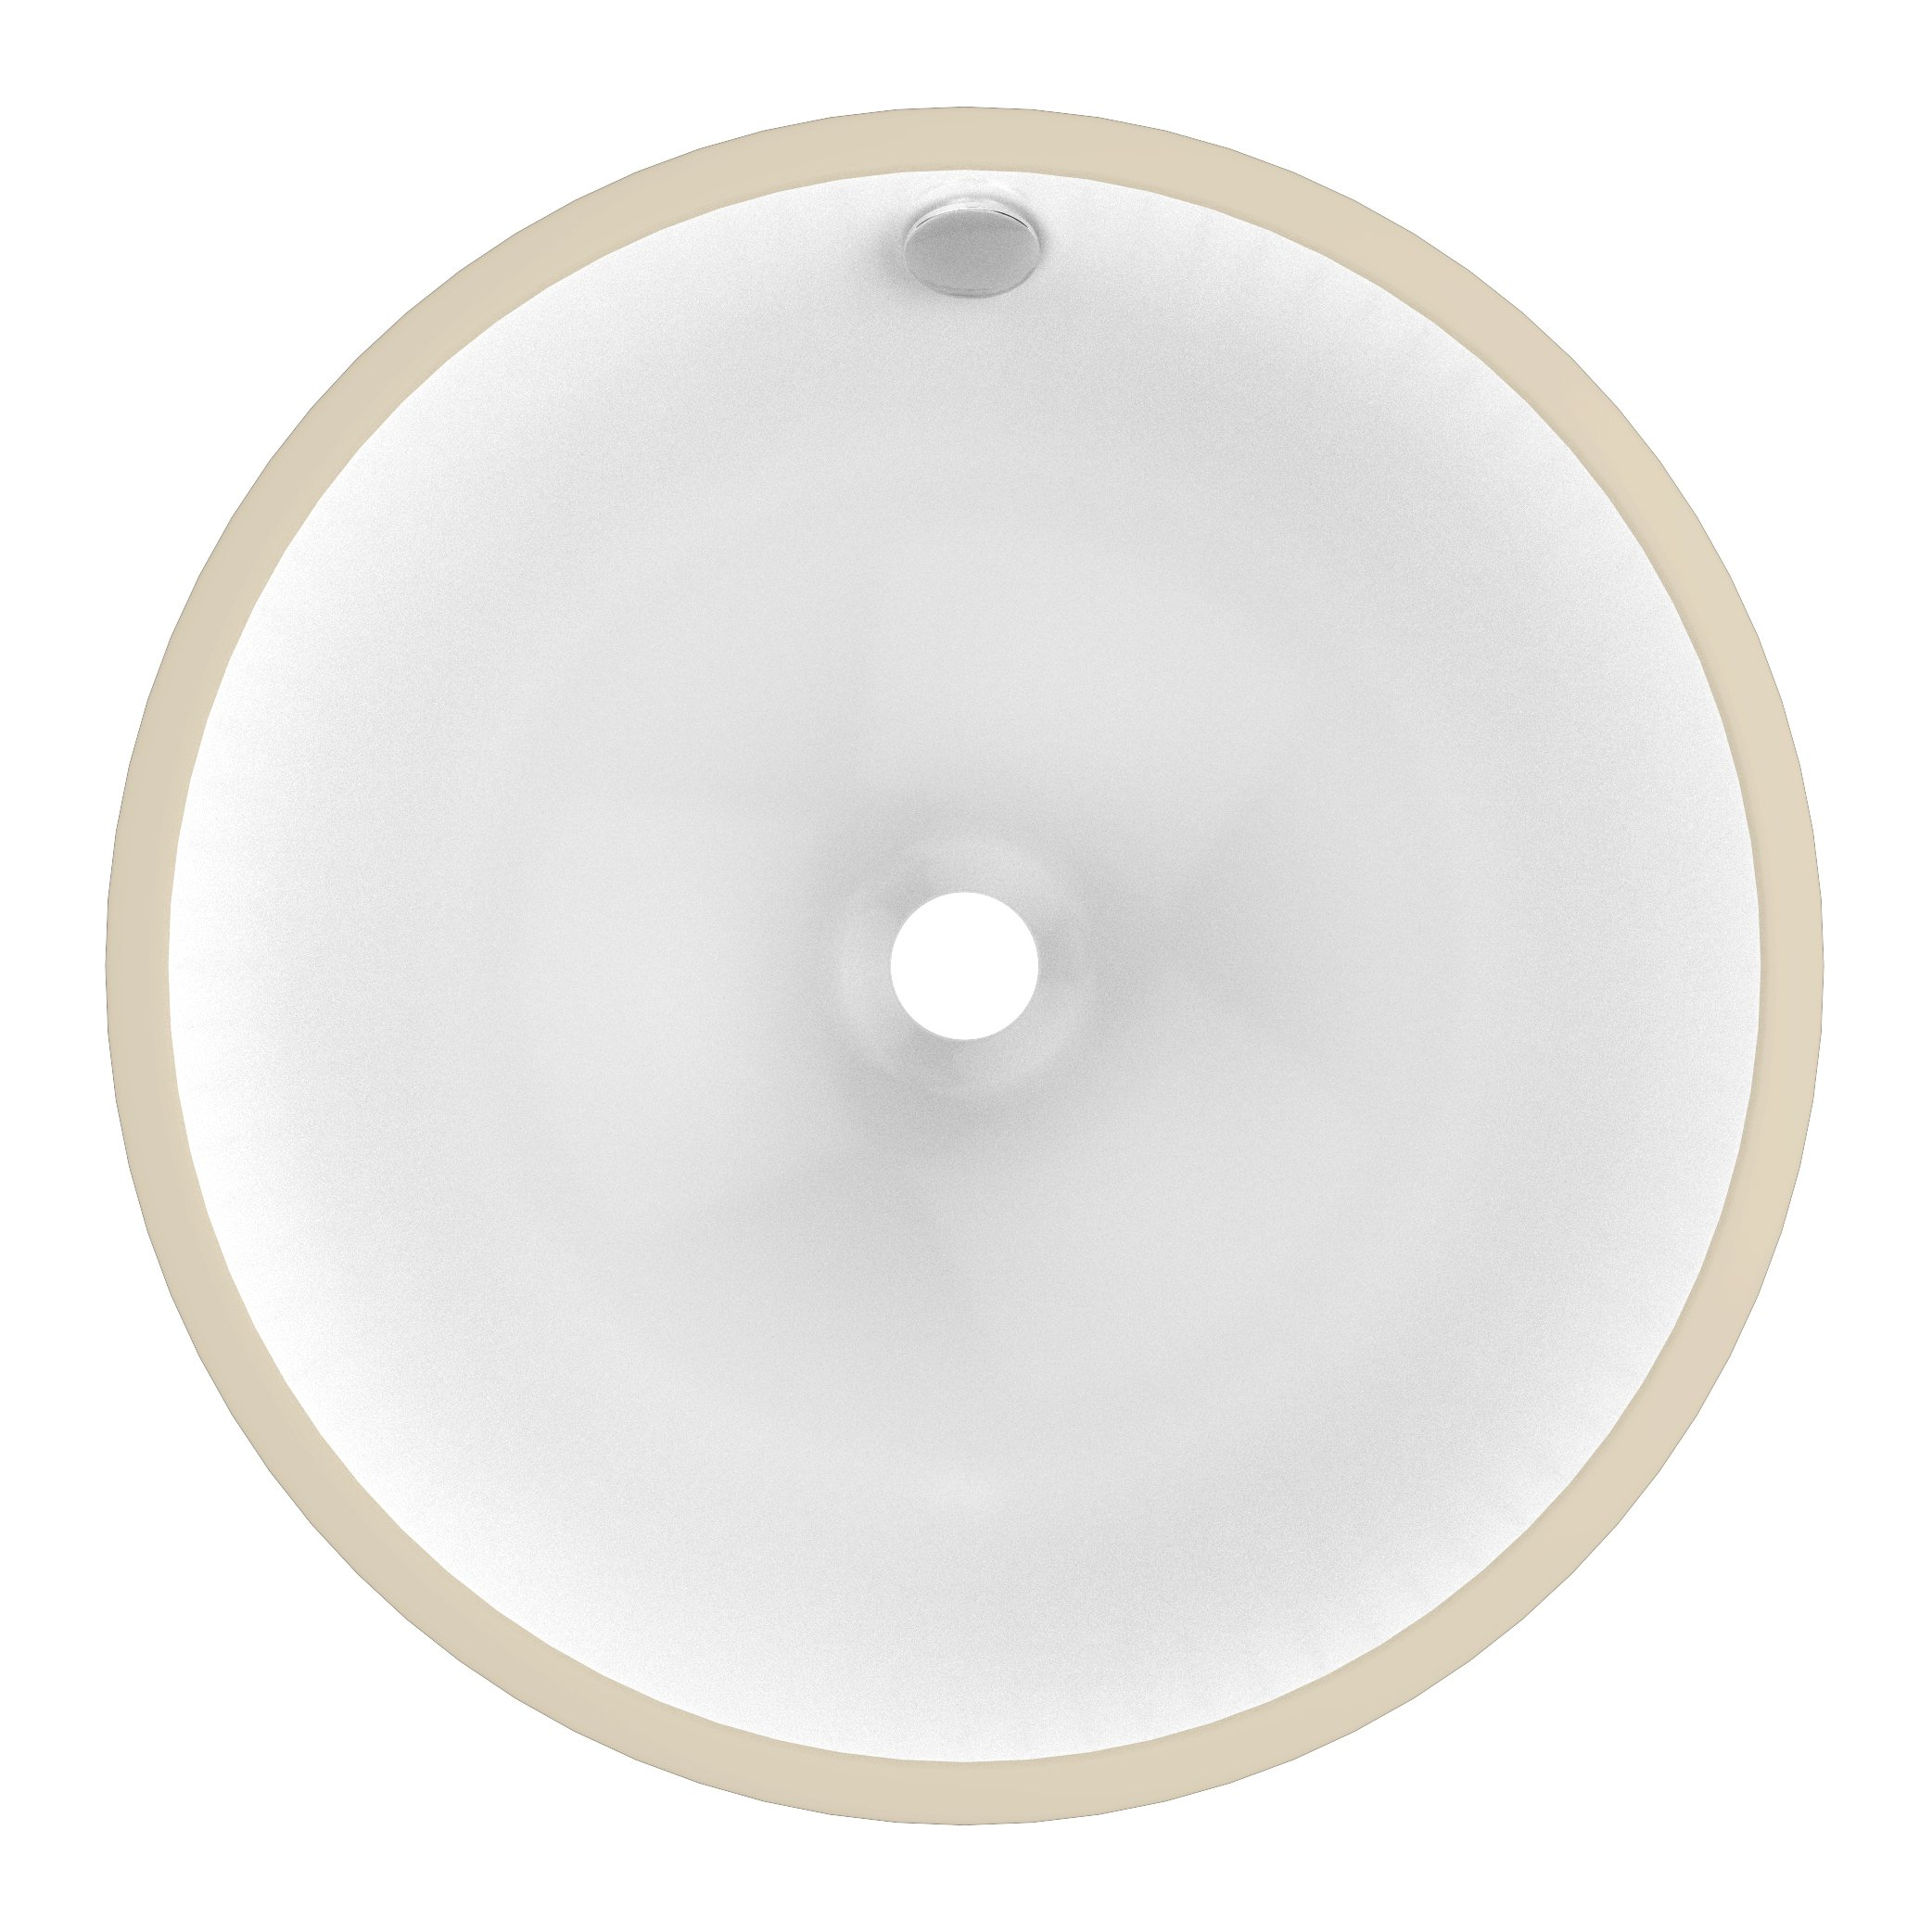 American Imaginations 15.25-in. W x 15.25-in. D Round Undermount Sink In White Color by American Imaginations